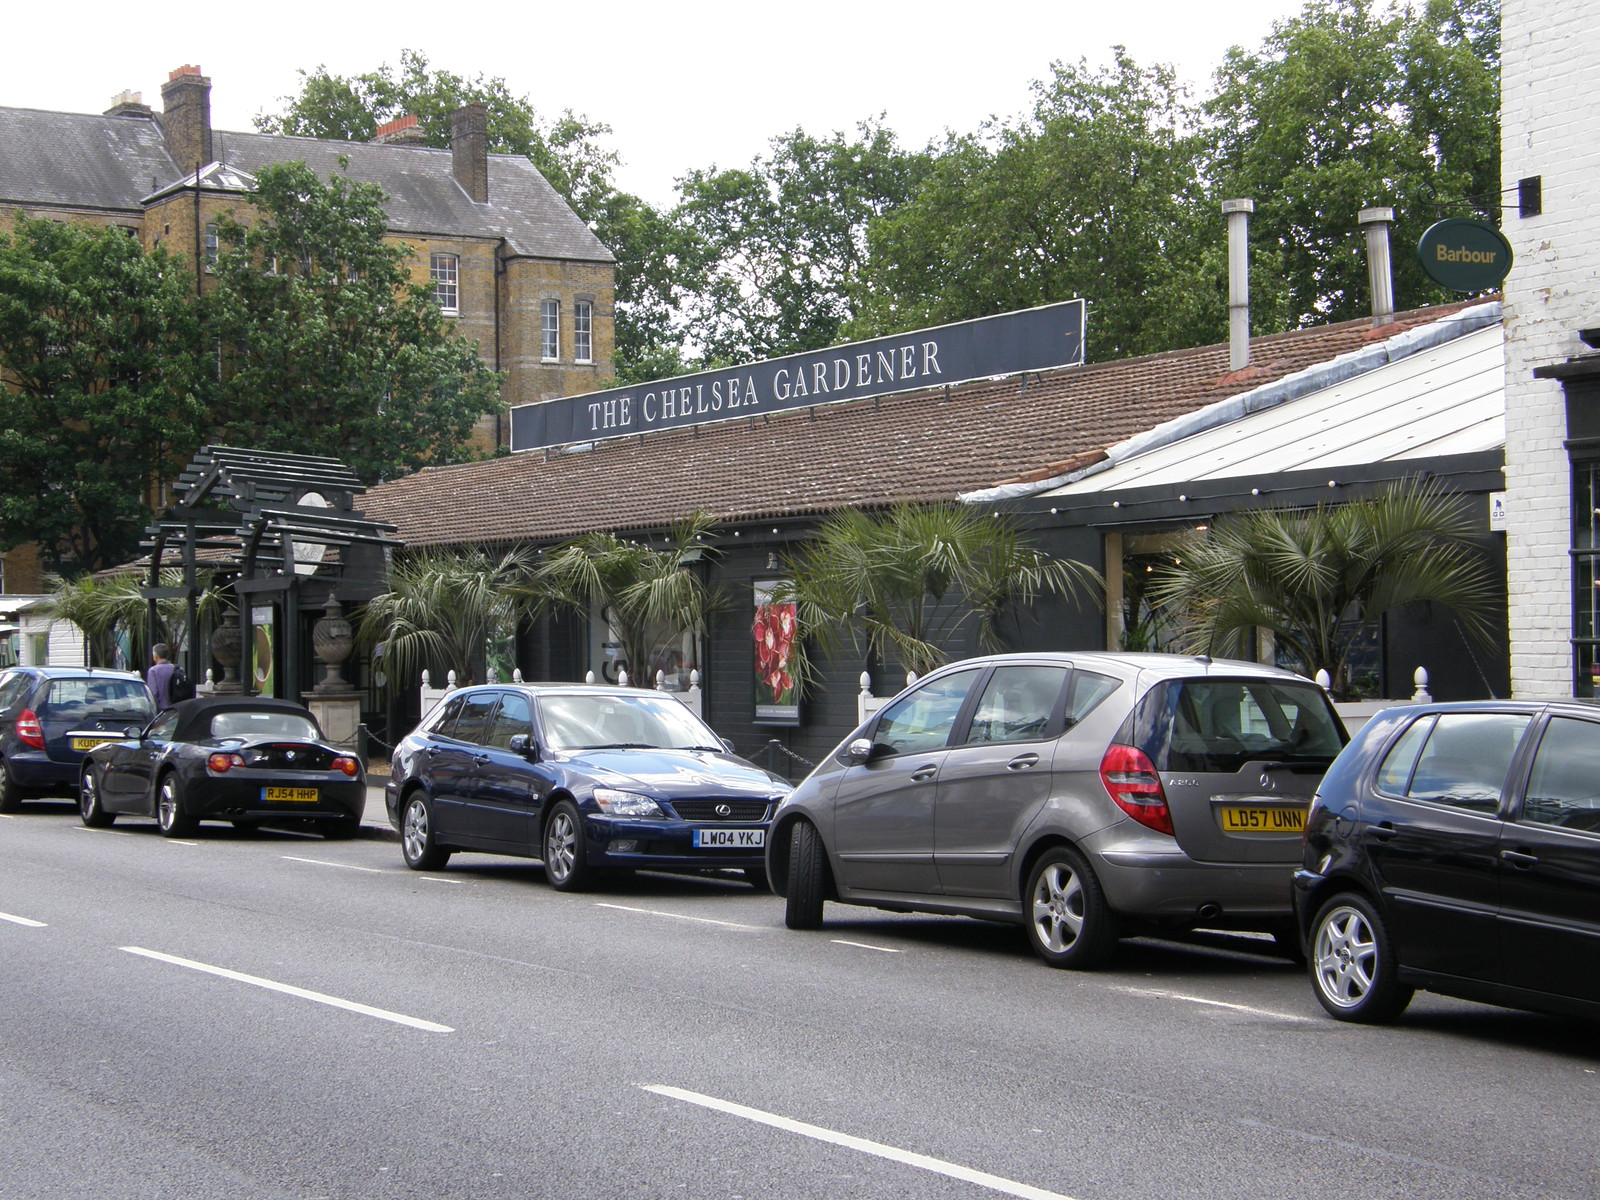 Image from Turnham Green and Kensington (Olympia) to Victoria